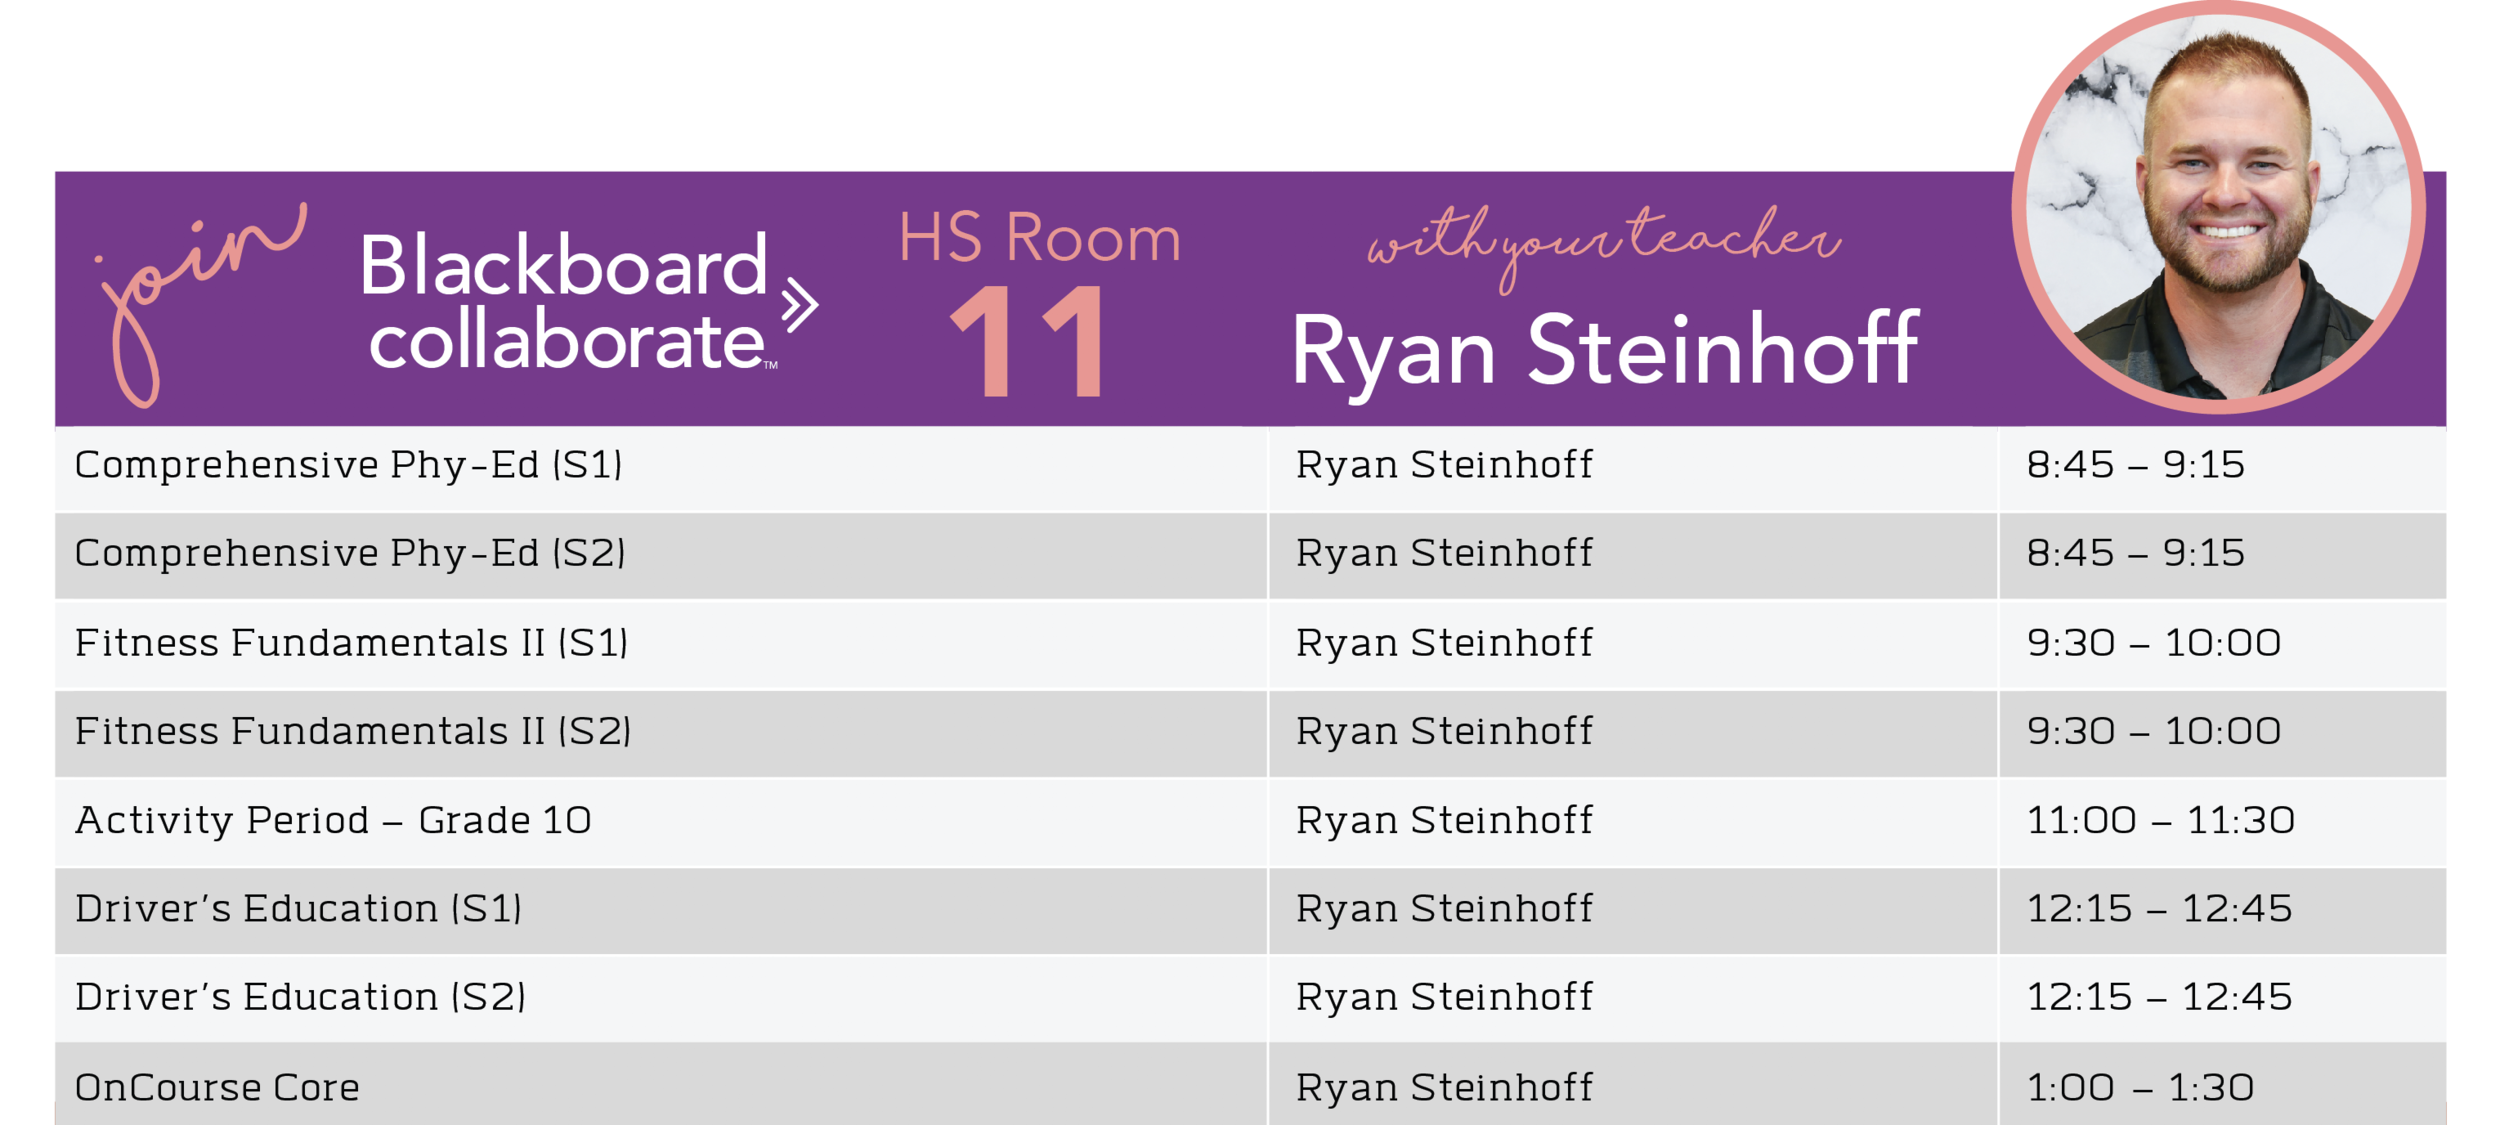 Ryan Steinhoff Blackboard Schedule